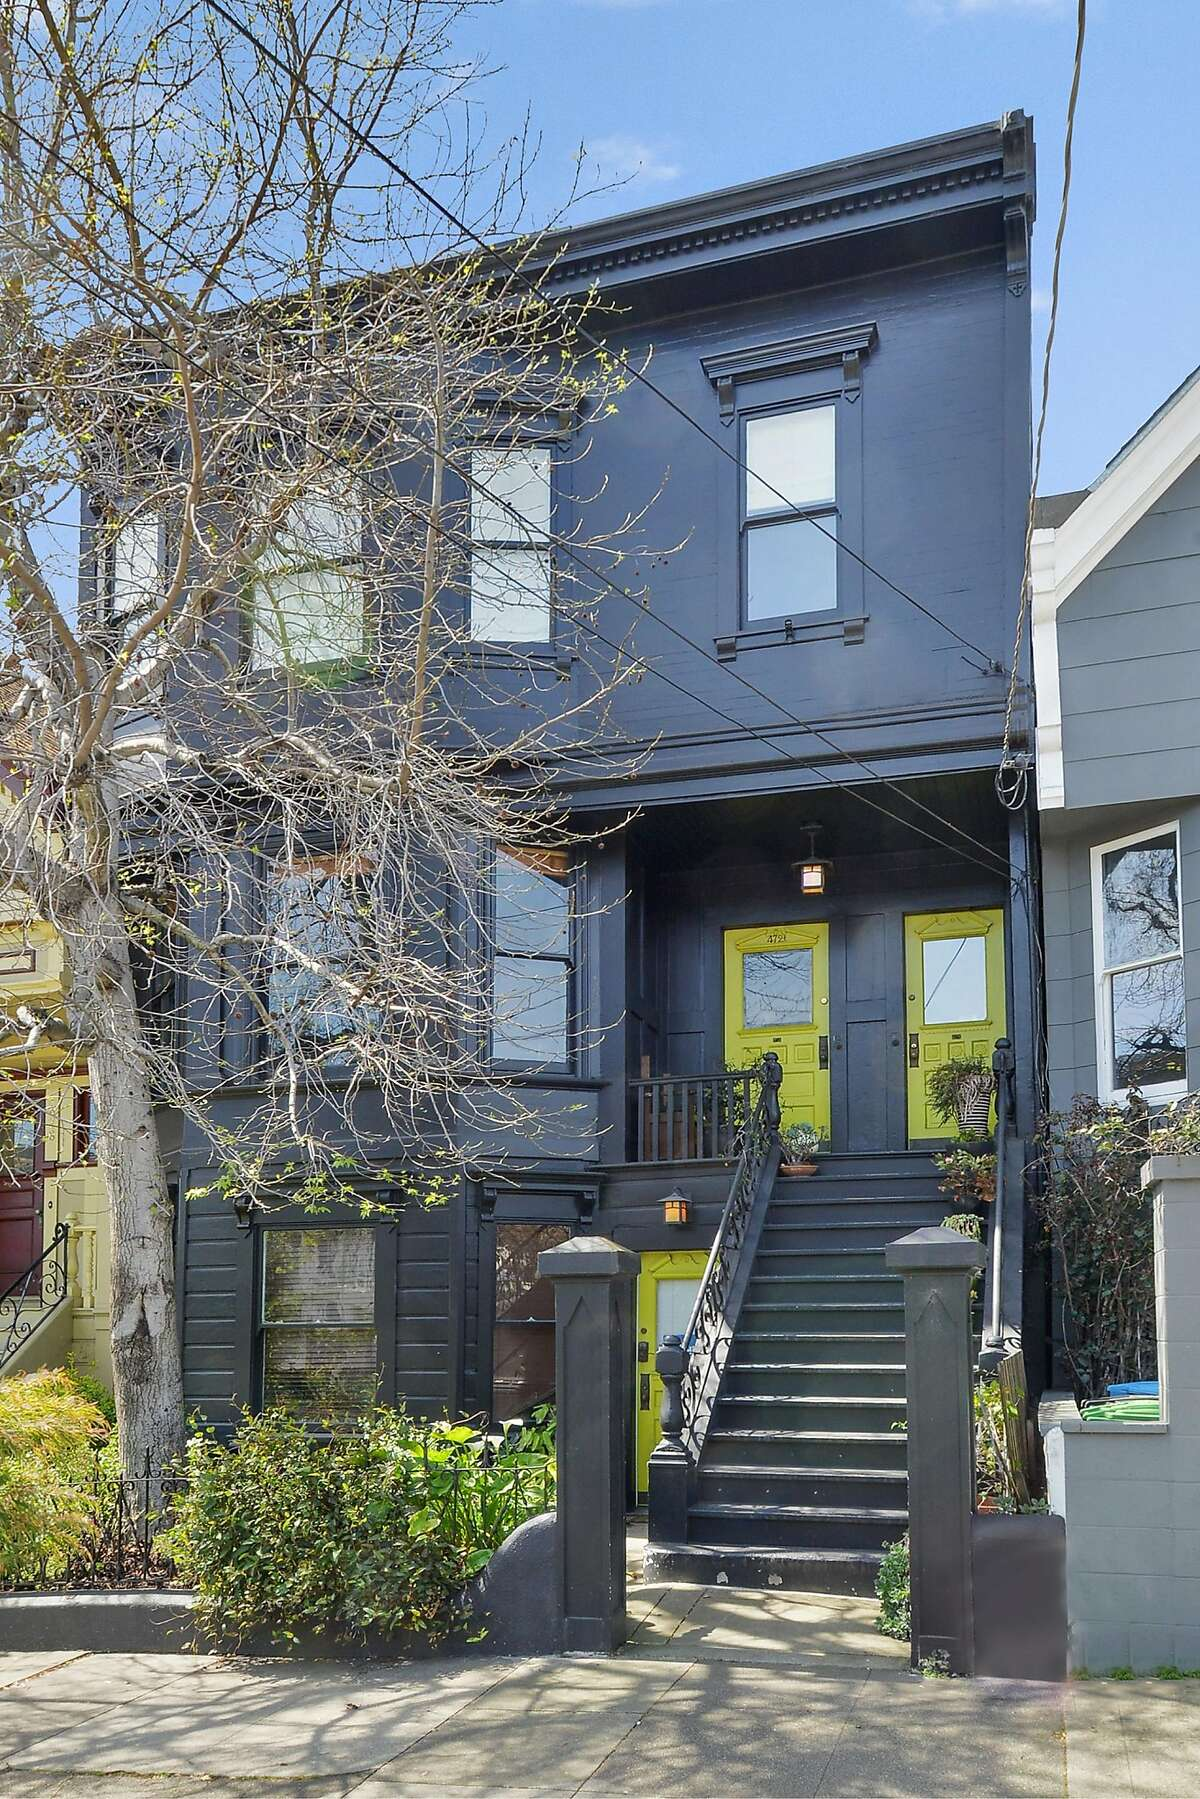 472 1/2 Noe St. is a two-bedroom flat with expansion potential available for $699,000.